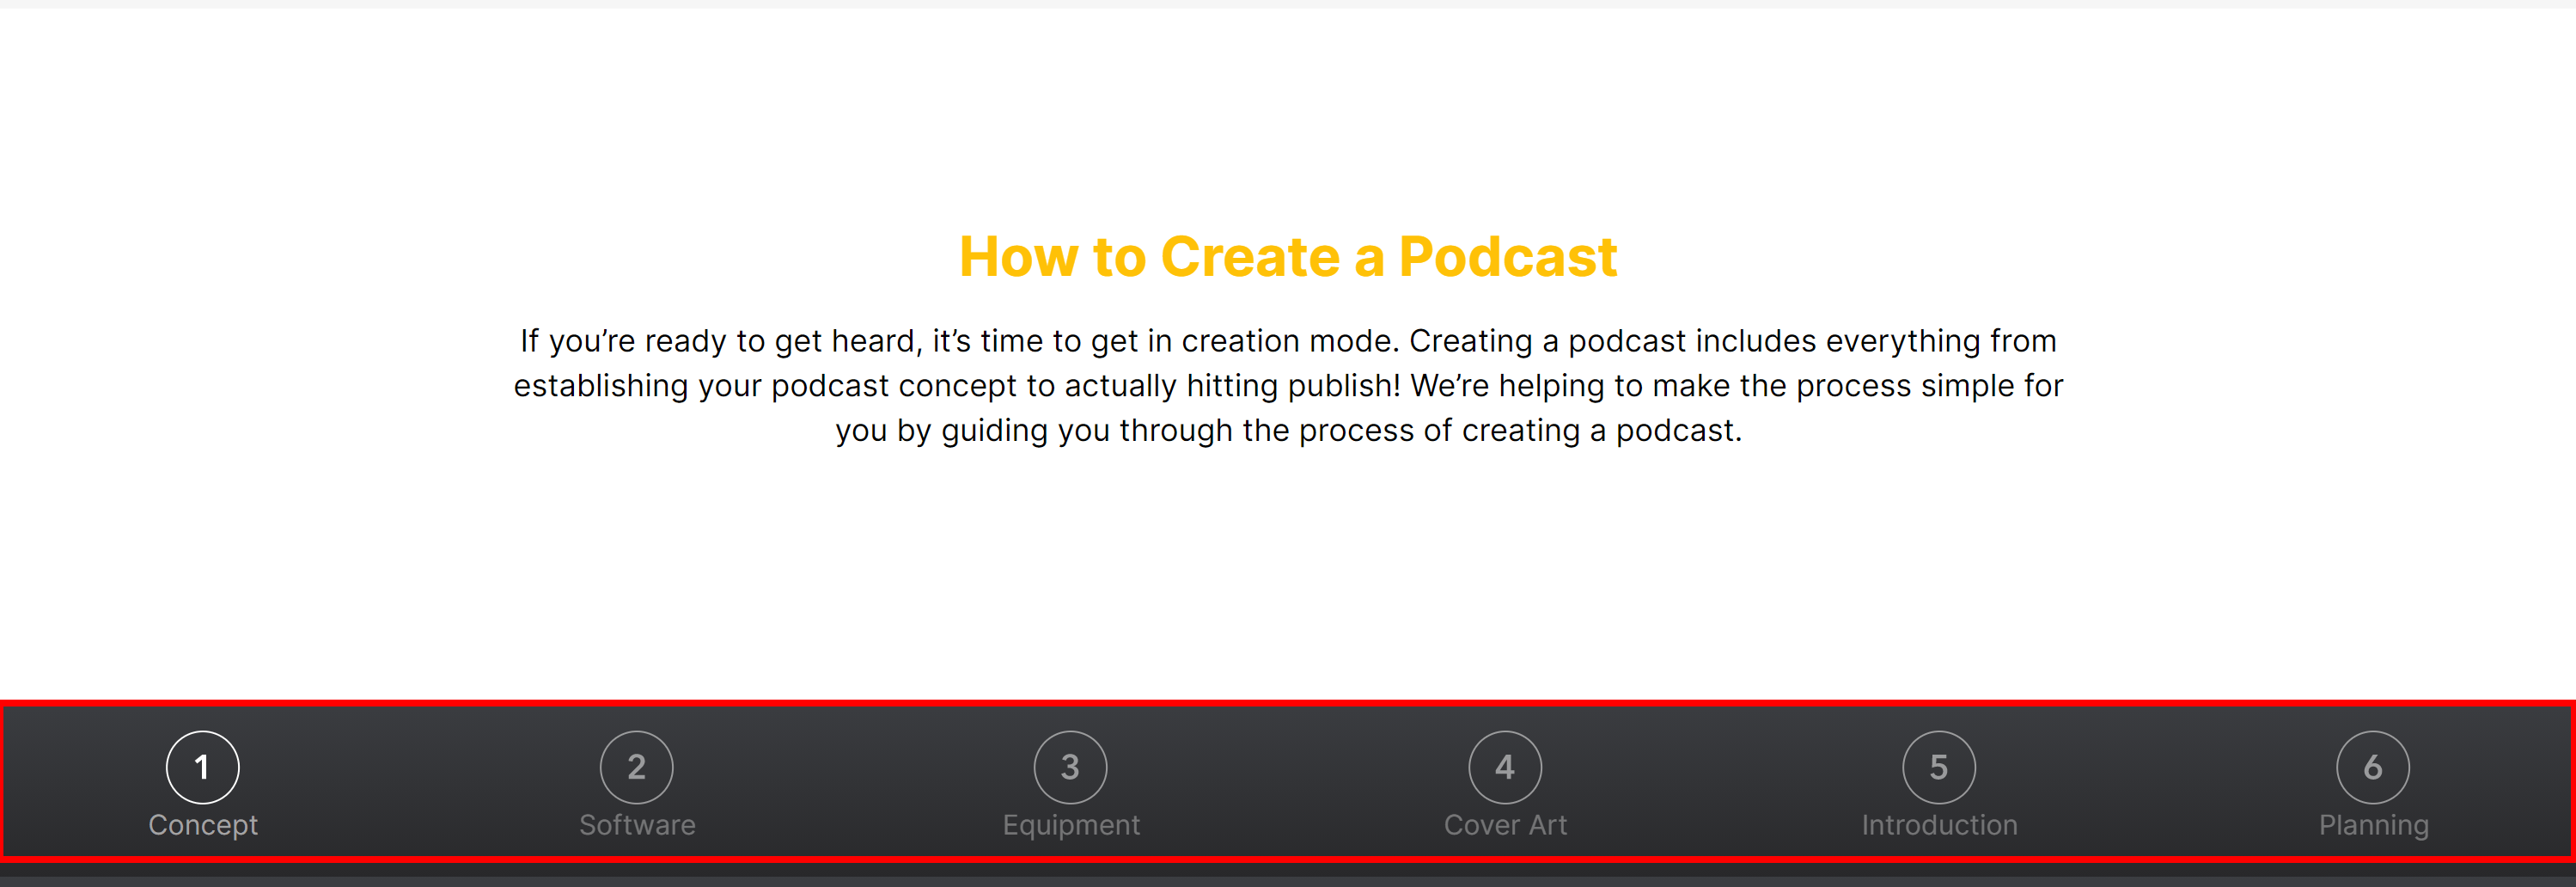 how to create podcast- spreaker reviews